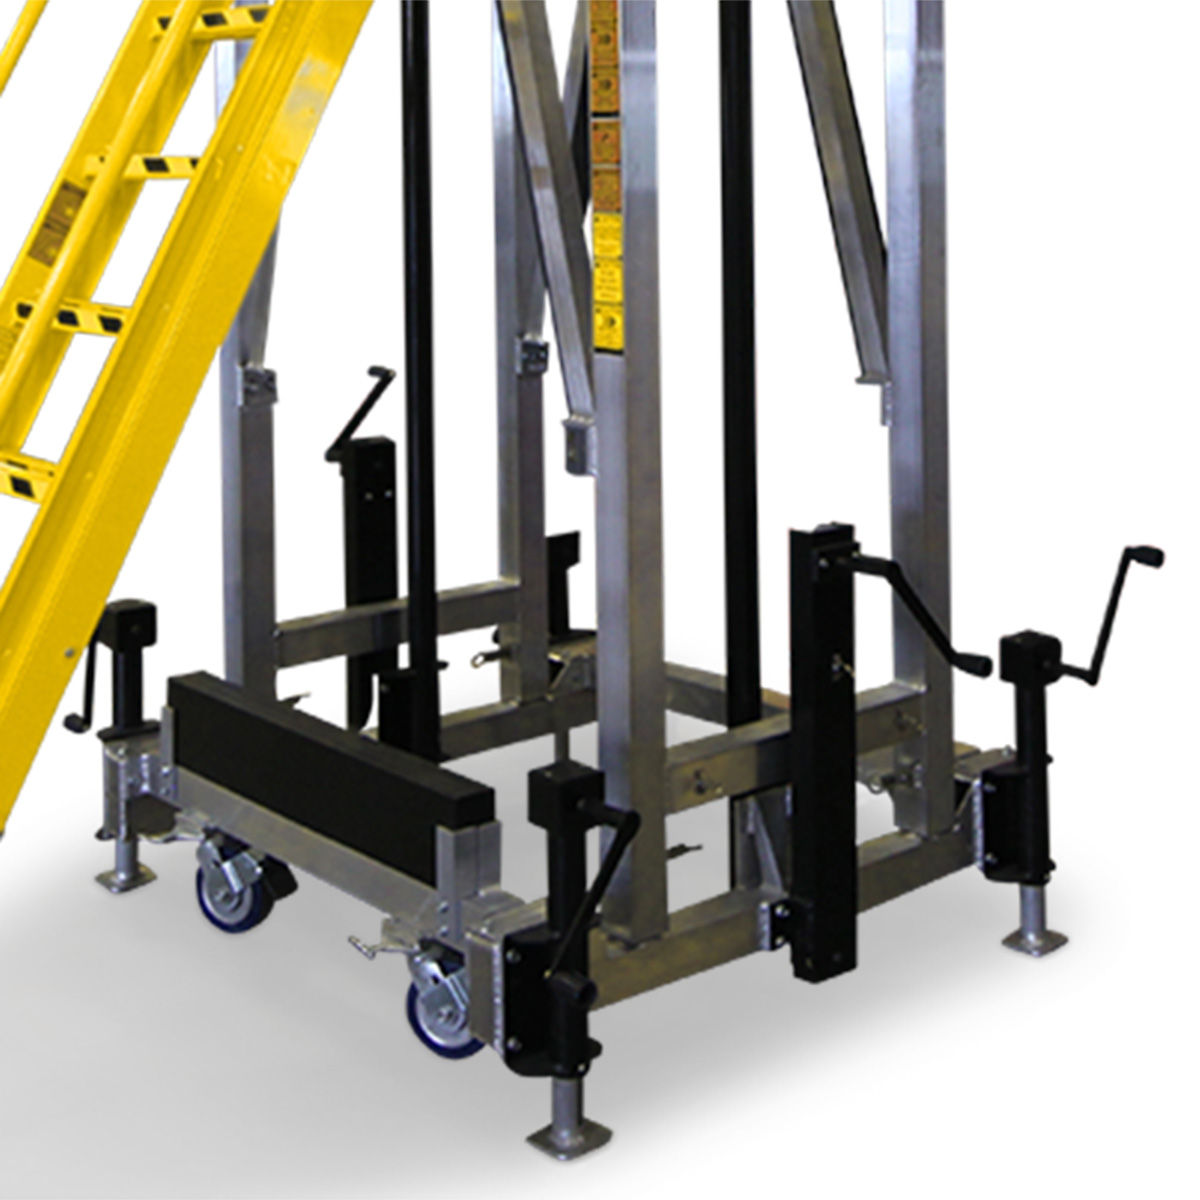 OSHA compliant work stand with added stability provided by optional counter weights and floor jacks for 100% fall protection.